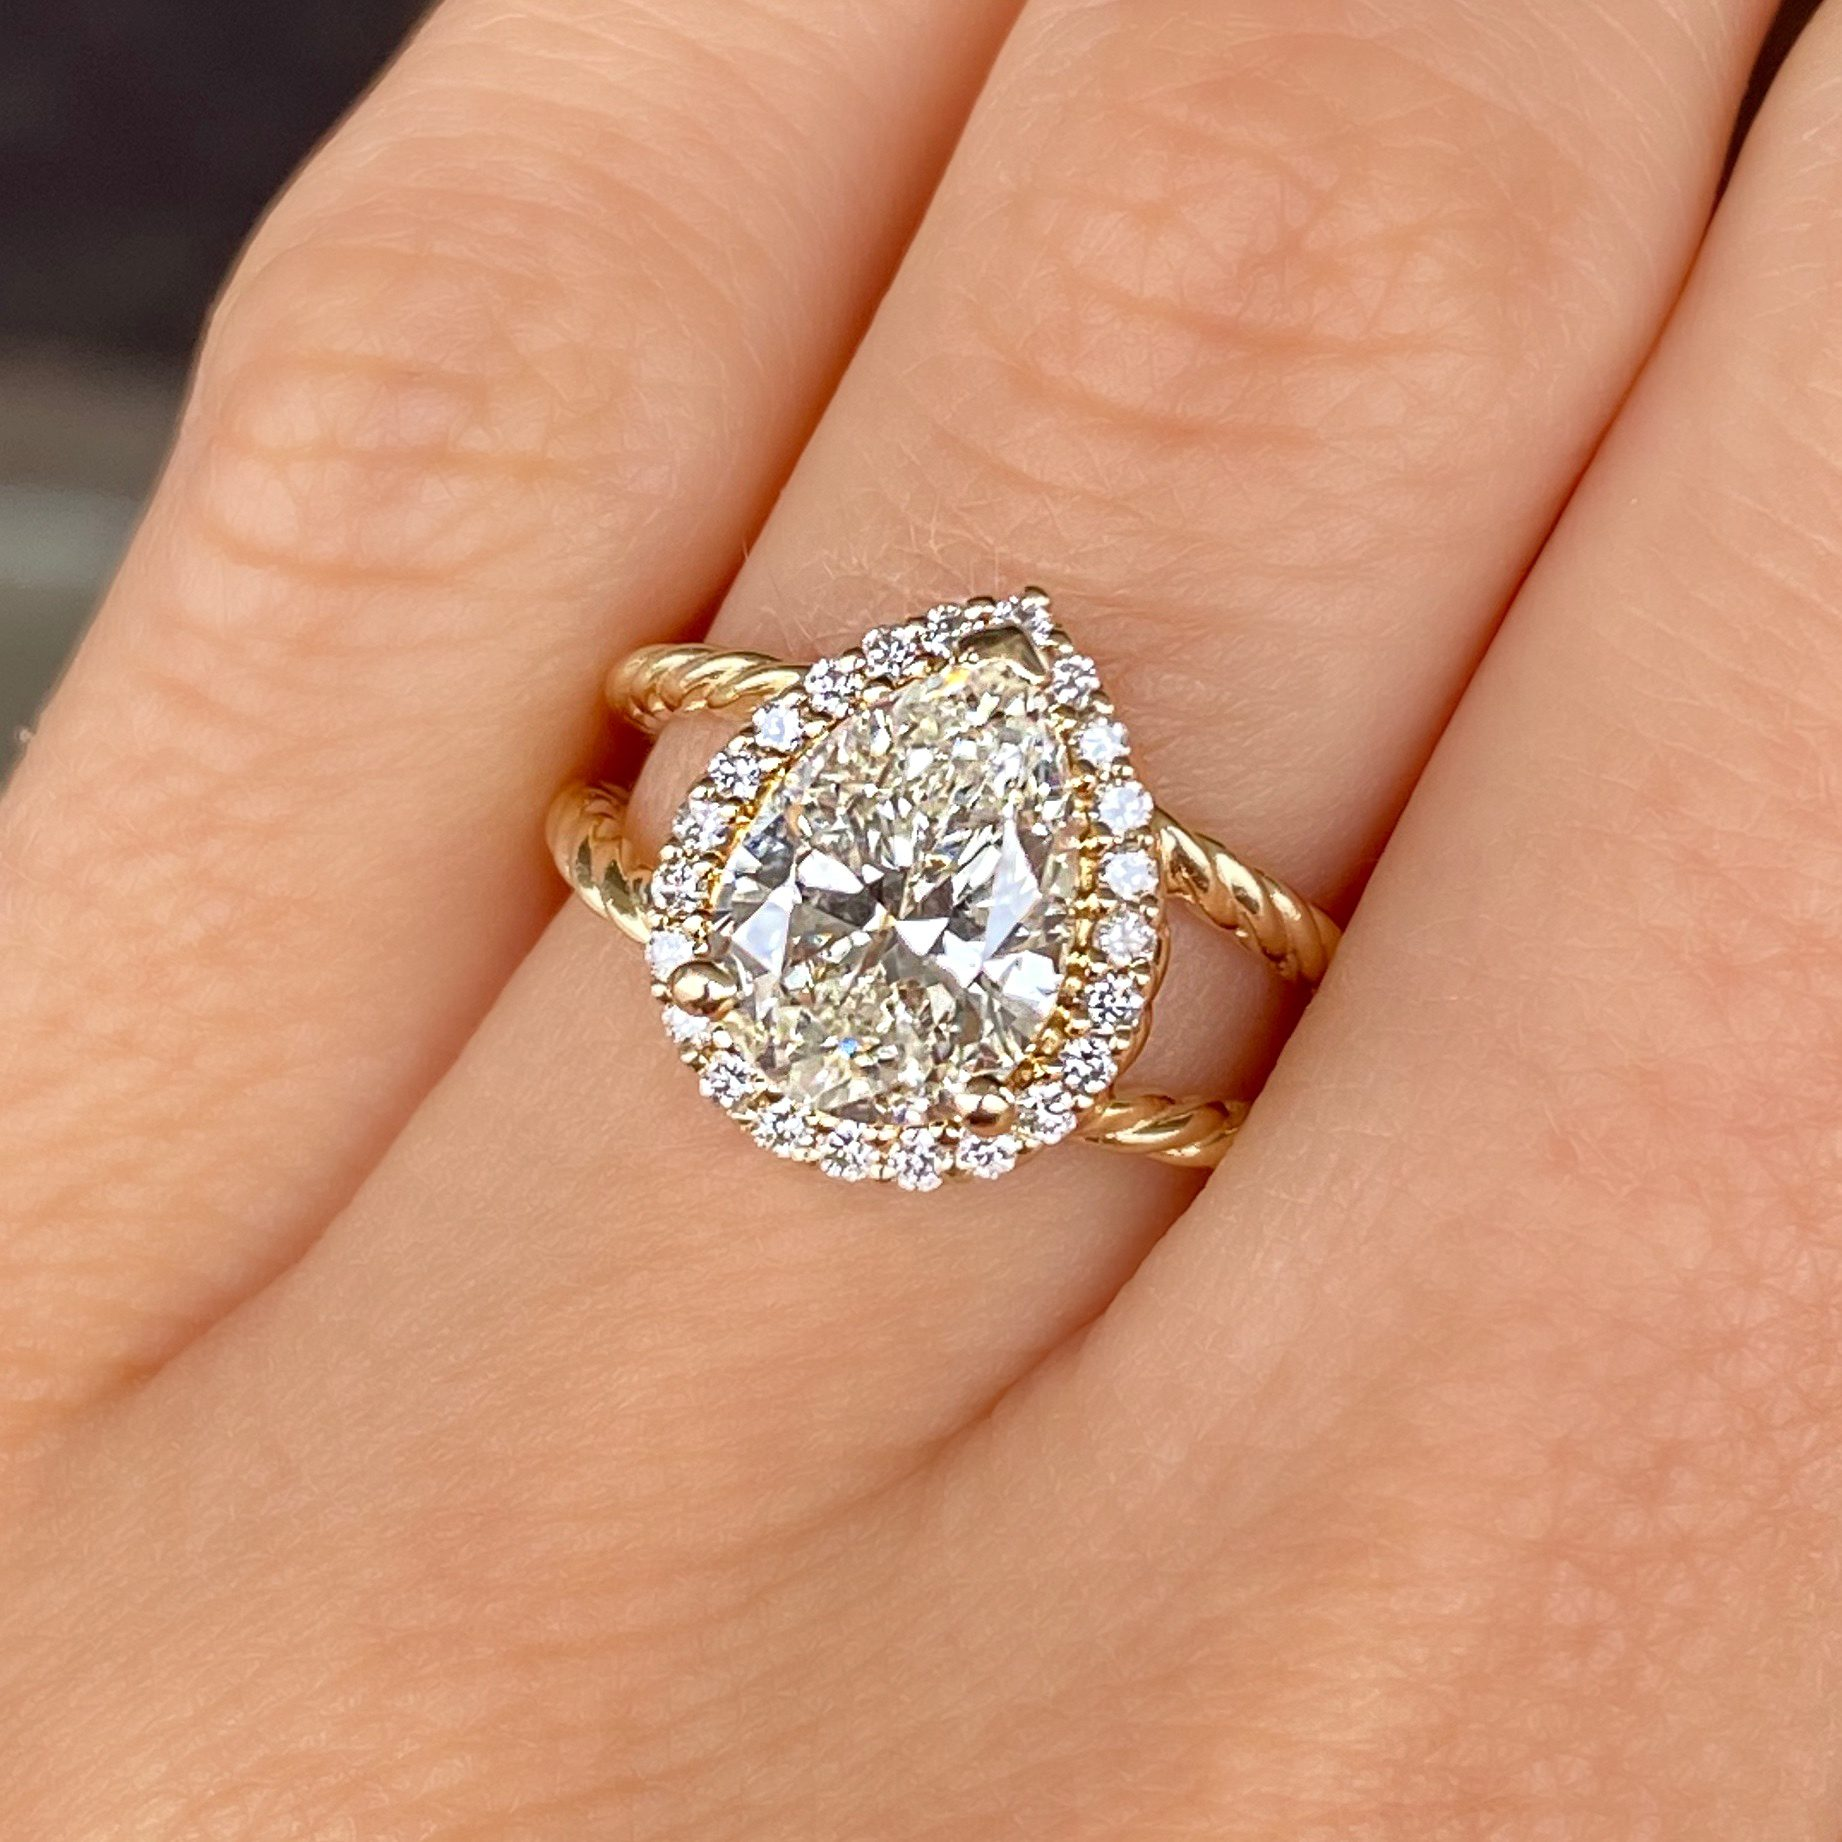 Custom Pear Shaped Diamond Engagement Ring created by Crawford's Jewelers in Waycross, Georgia